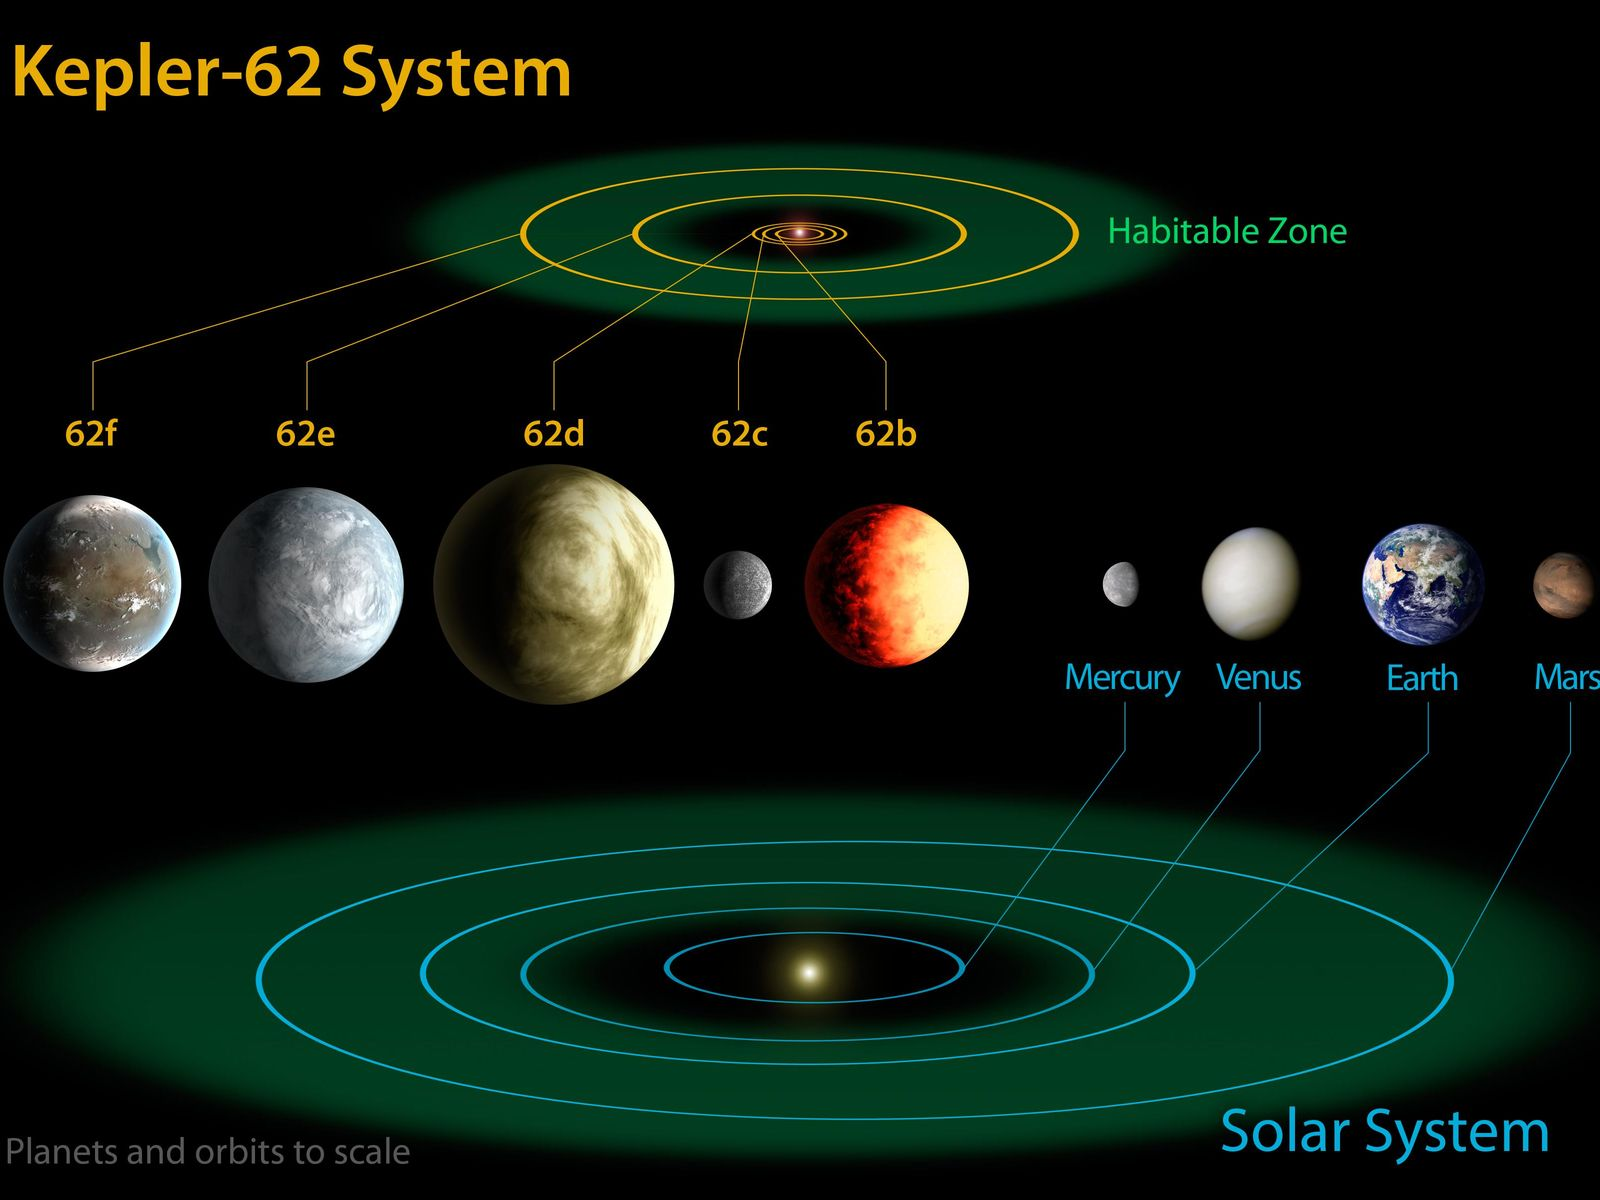 Space Images | Kepler-62 and the Solar System